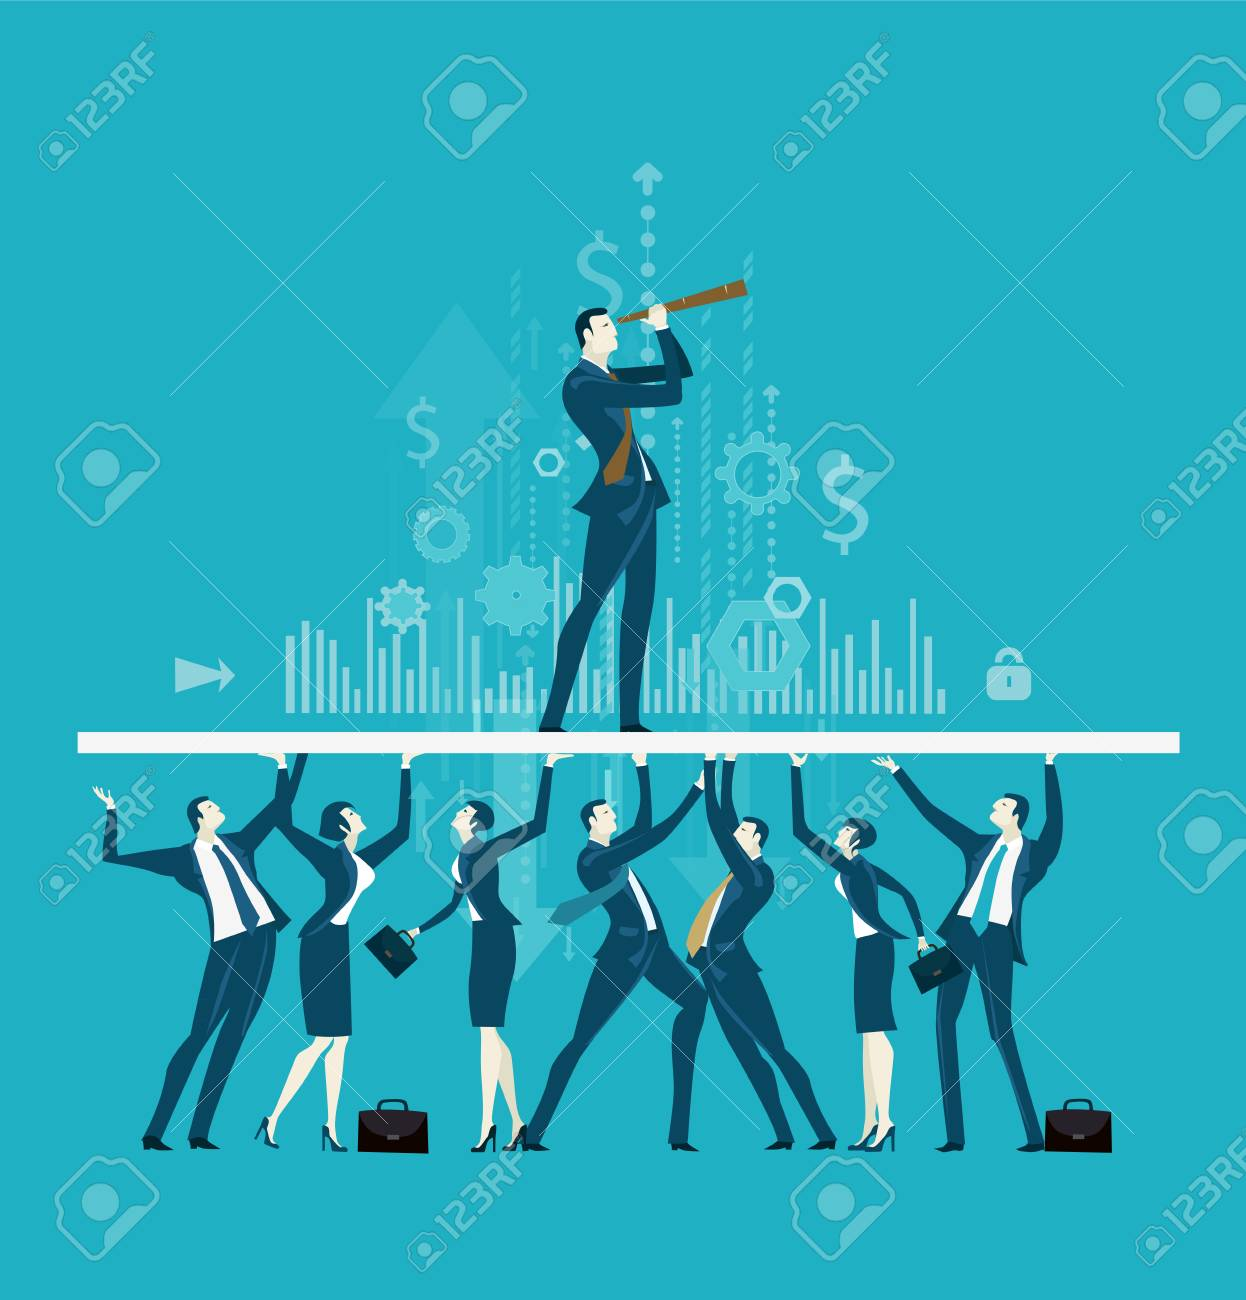 Team of successful business people holding up the platform with